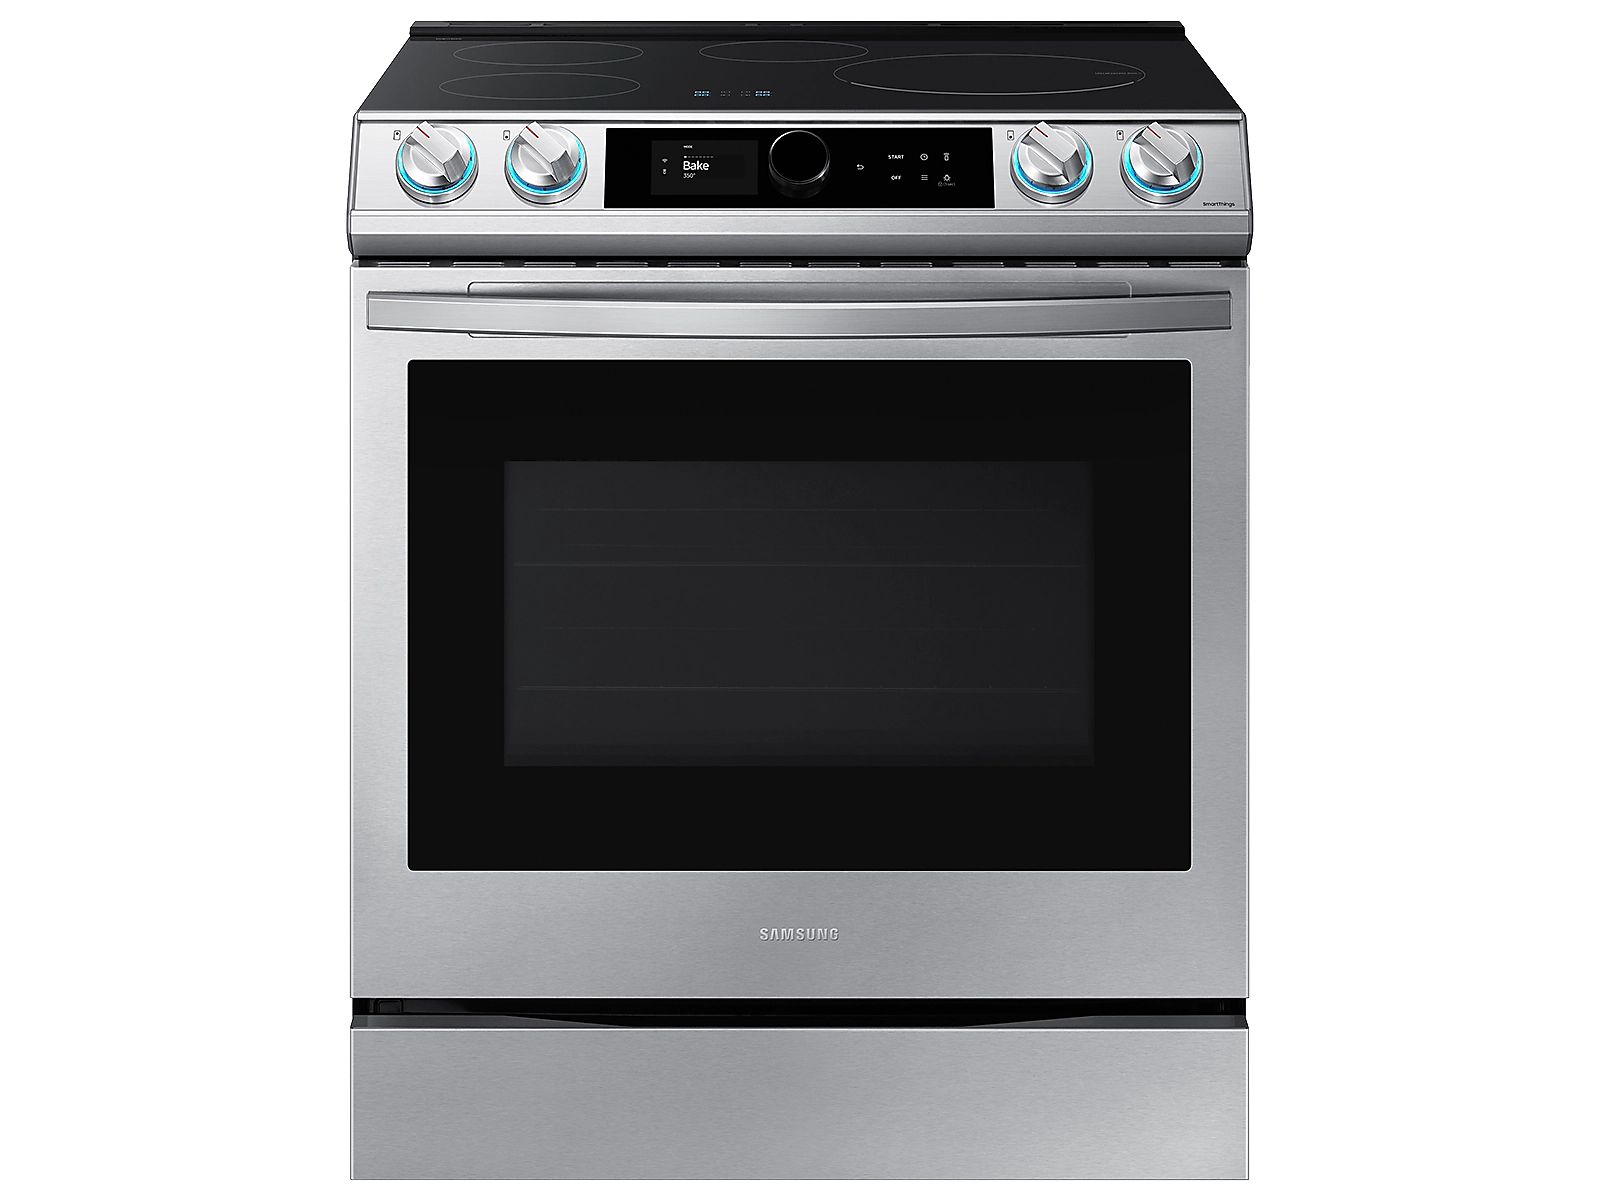 Samsung 6.3 cu. ft. Smart Slide-induction Range with Smart Dial & Air Fry in Silver(NE63T8911SS/AA)